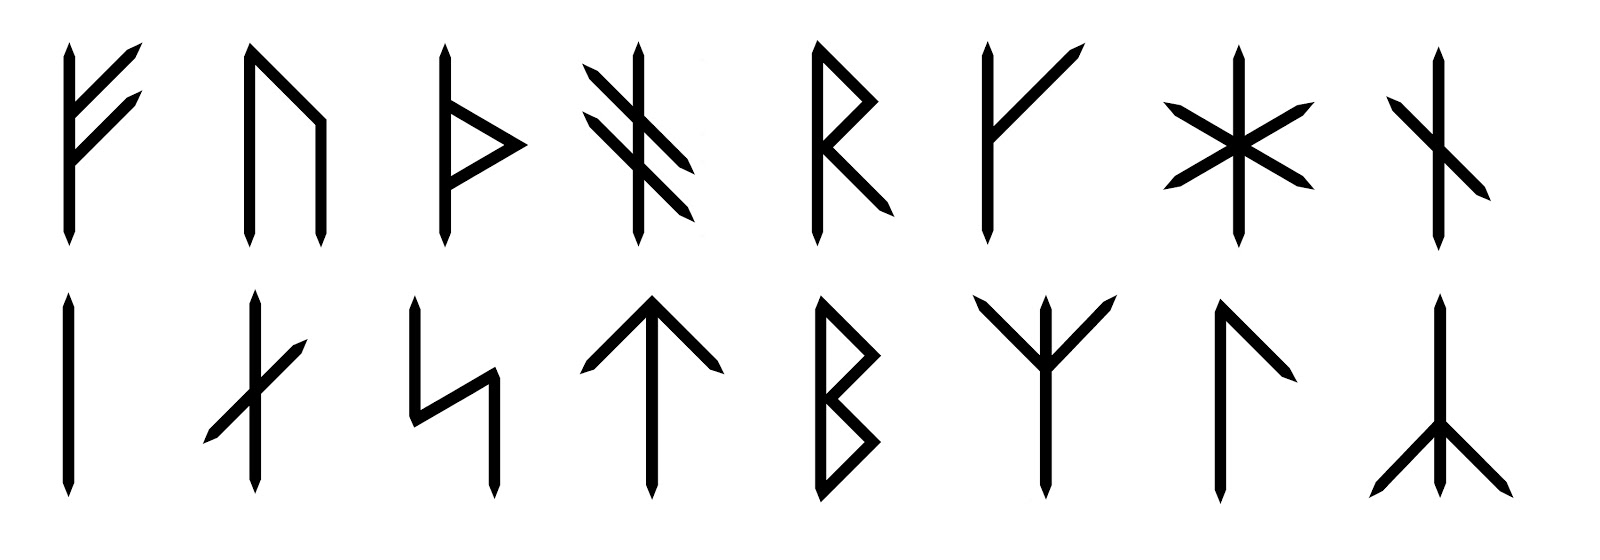 Real Rune Magick The Esoteric Praxis Of Bind Runes Part 2